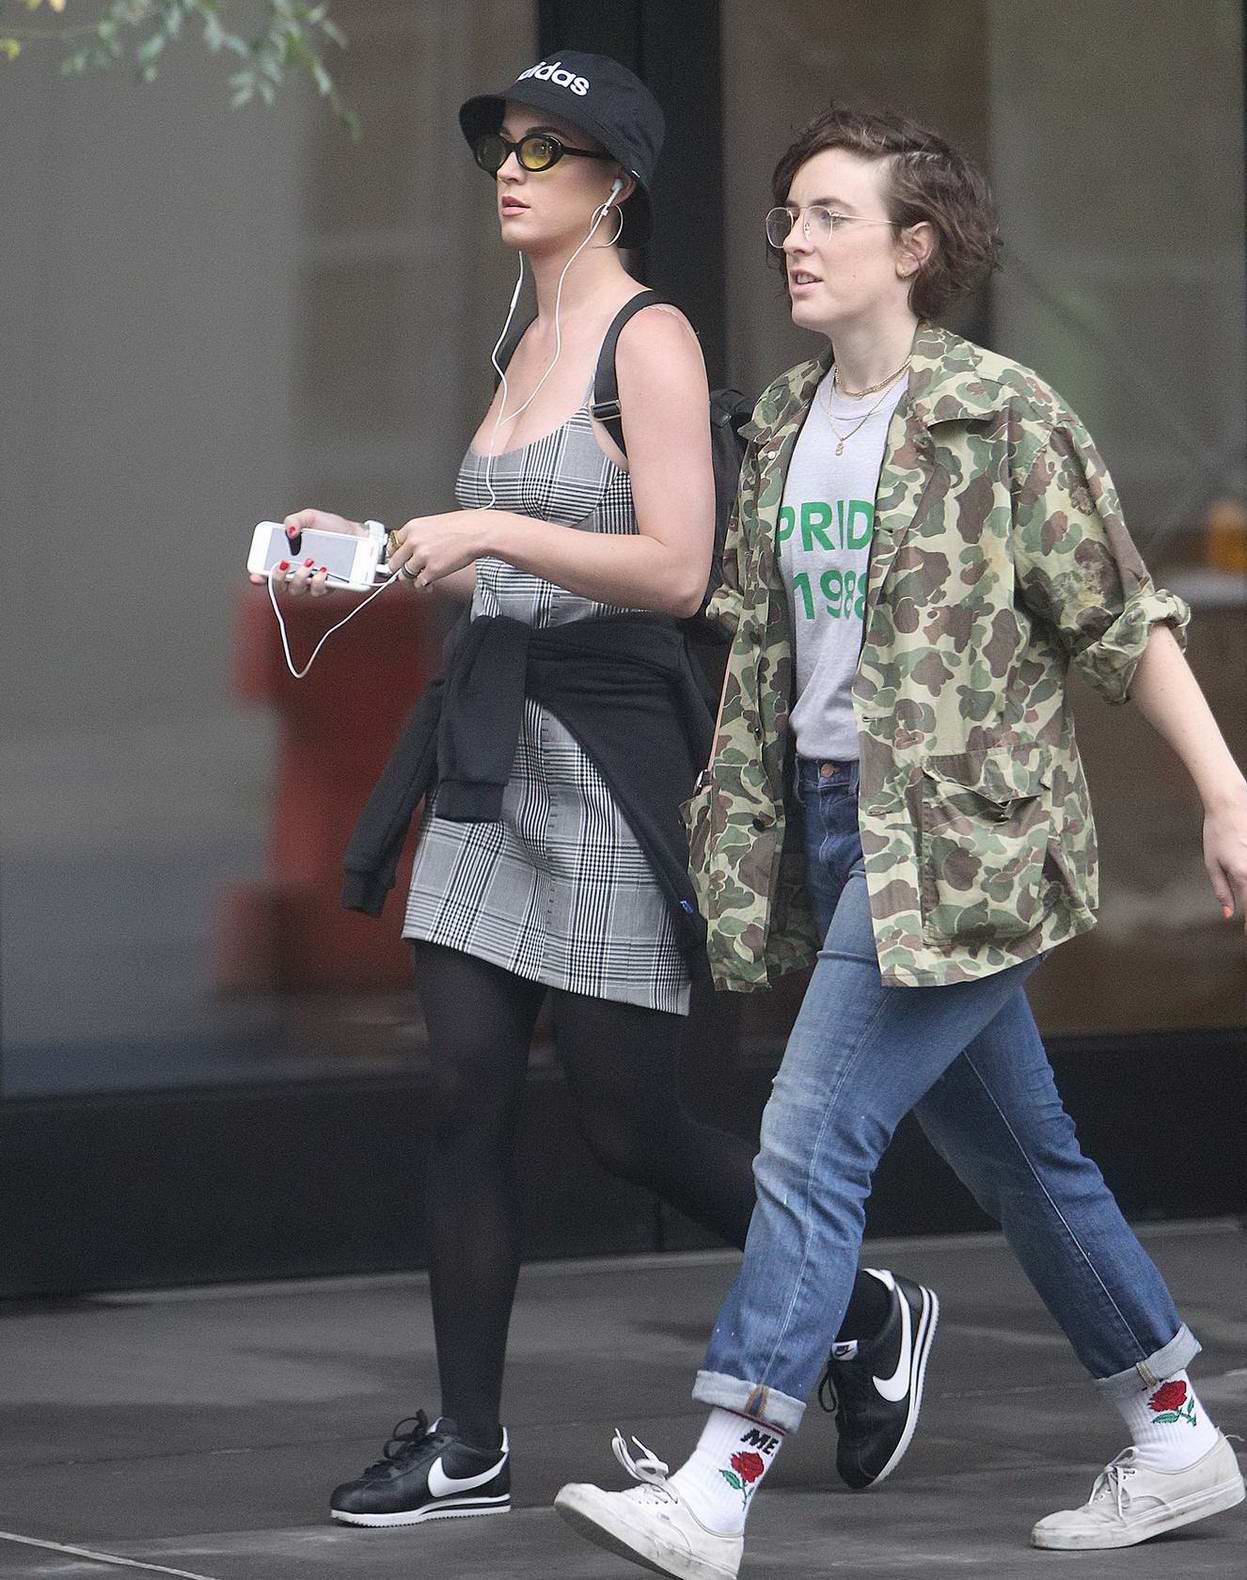 Katy Perry steps out for a stroll with a friend in New York City